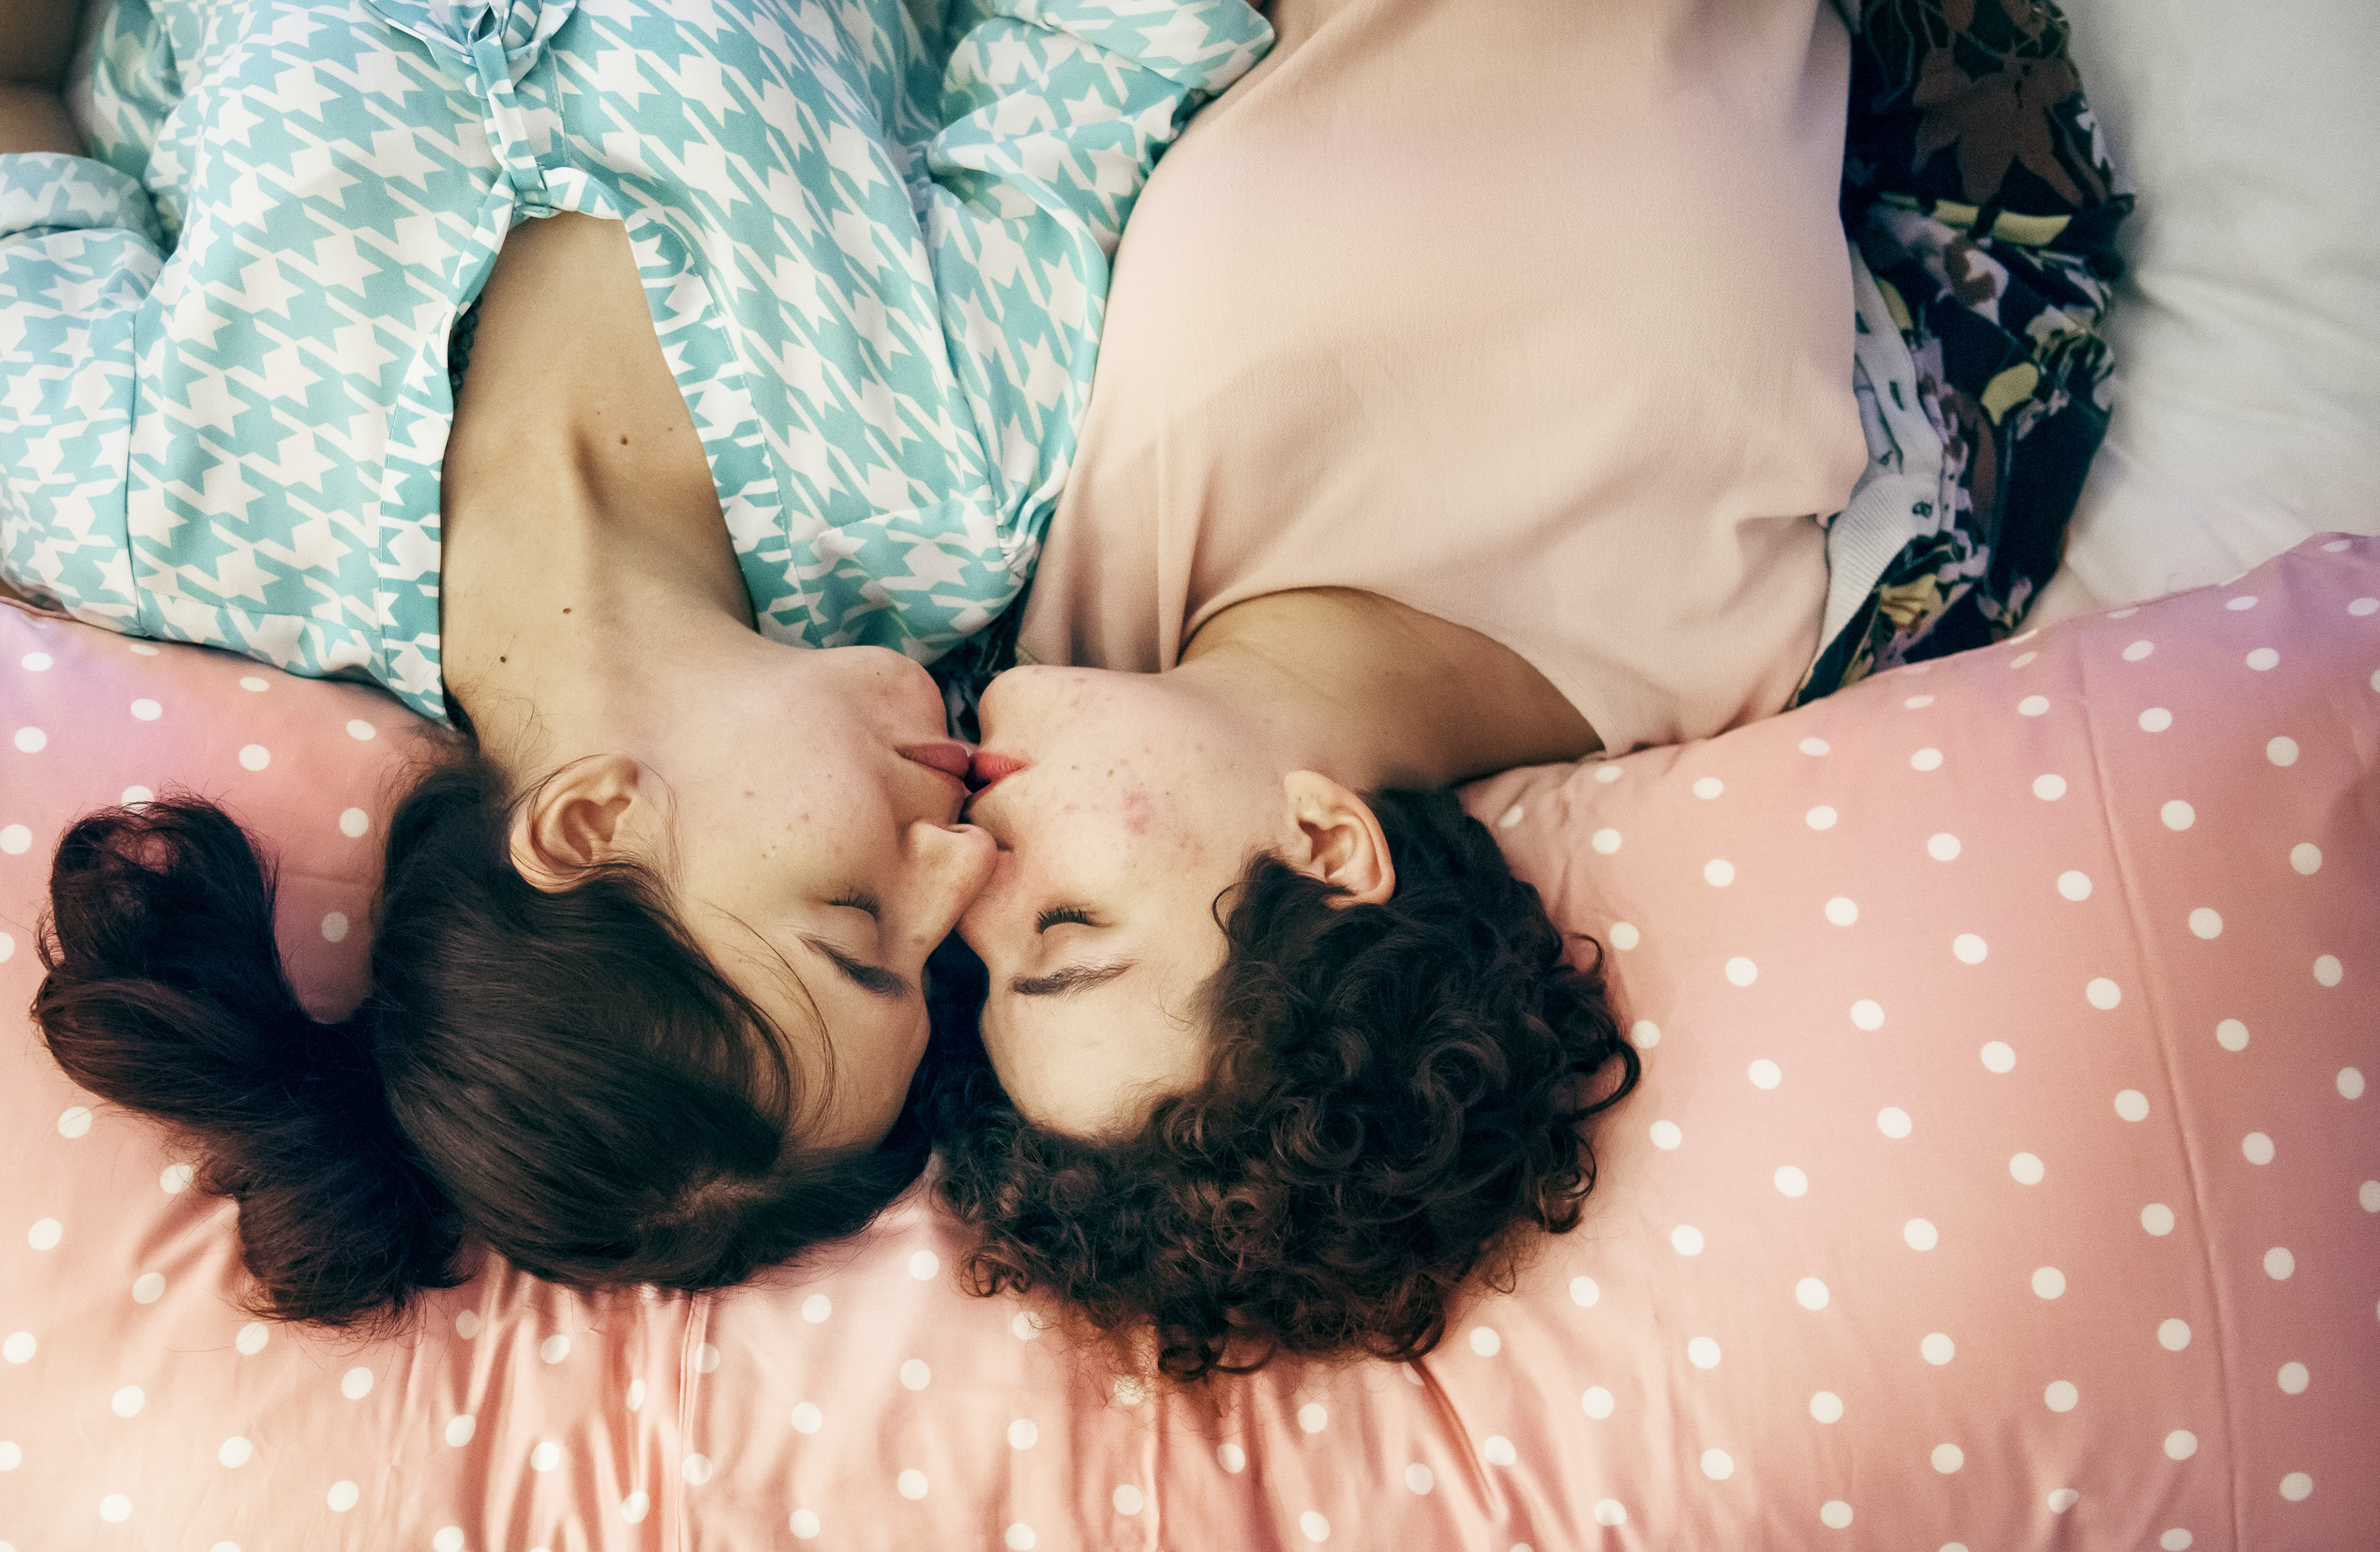 two women kissing while sleeping